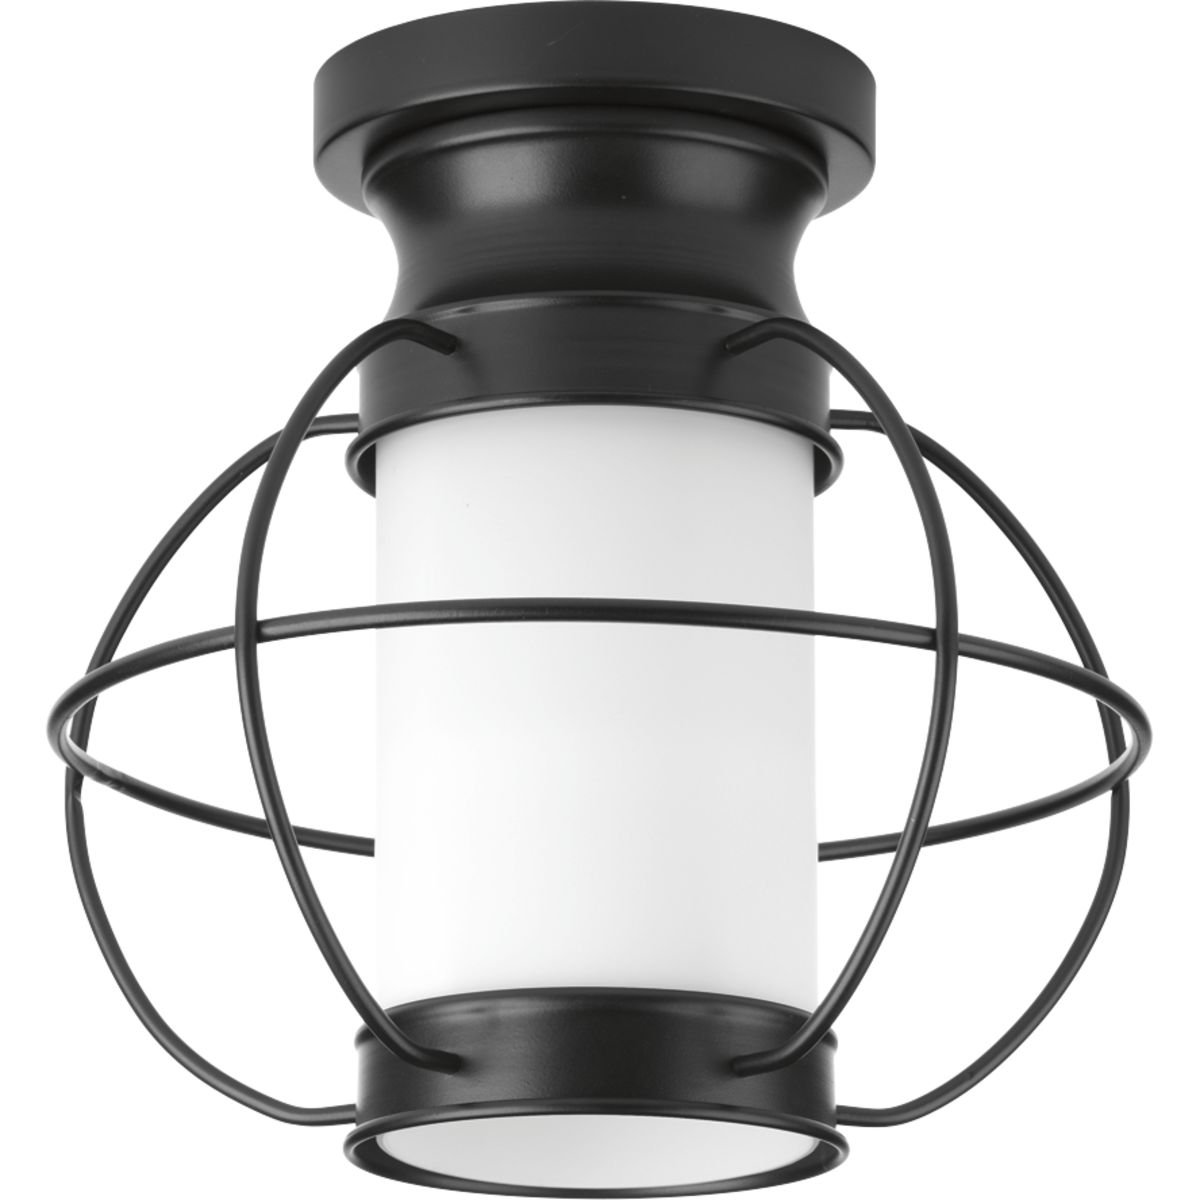 Progress Lighting P550016-031 Haddon One-Light Flush Mount, Black by Progress Lighting